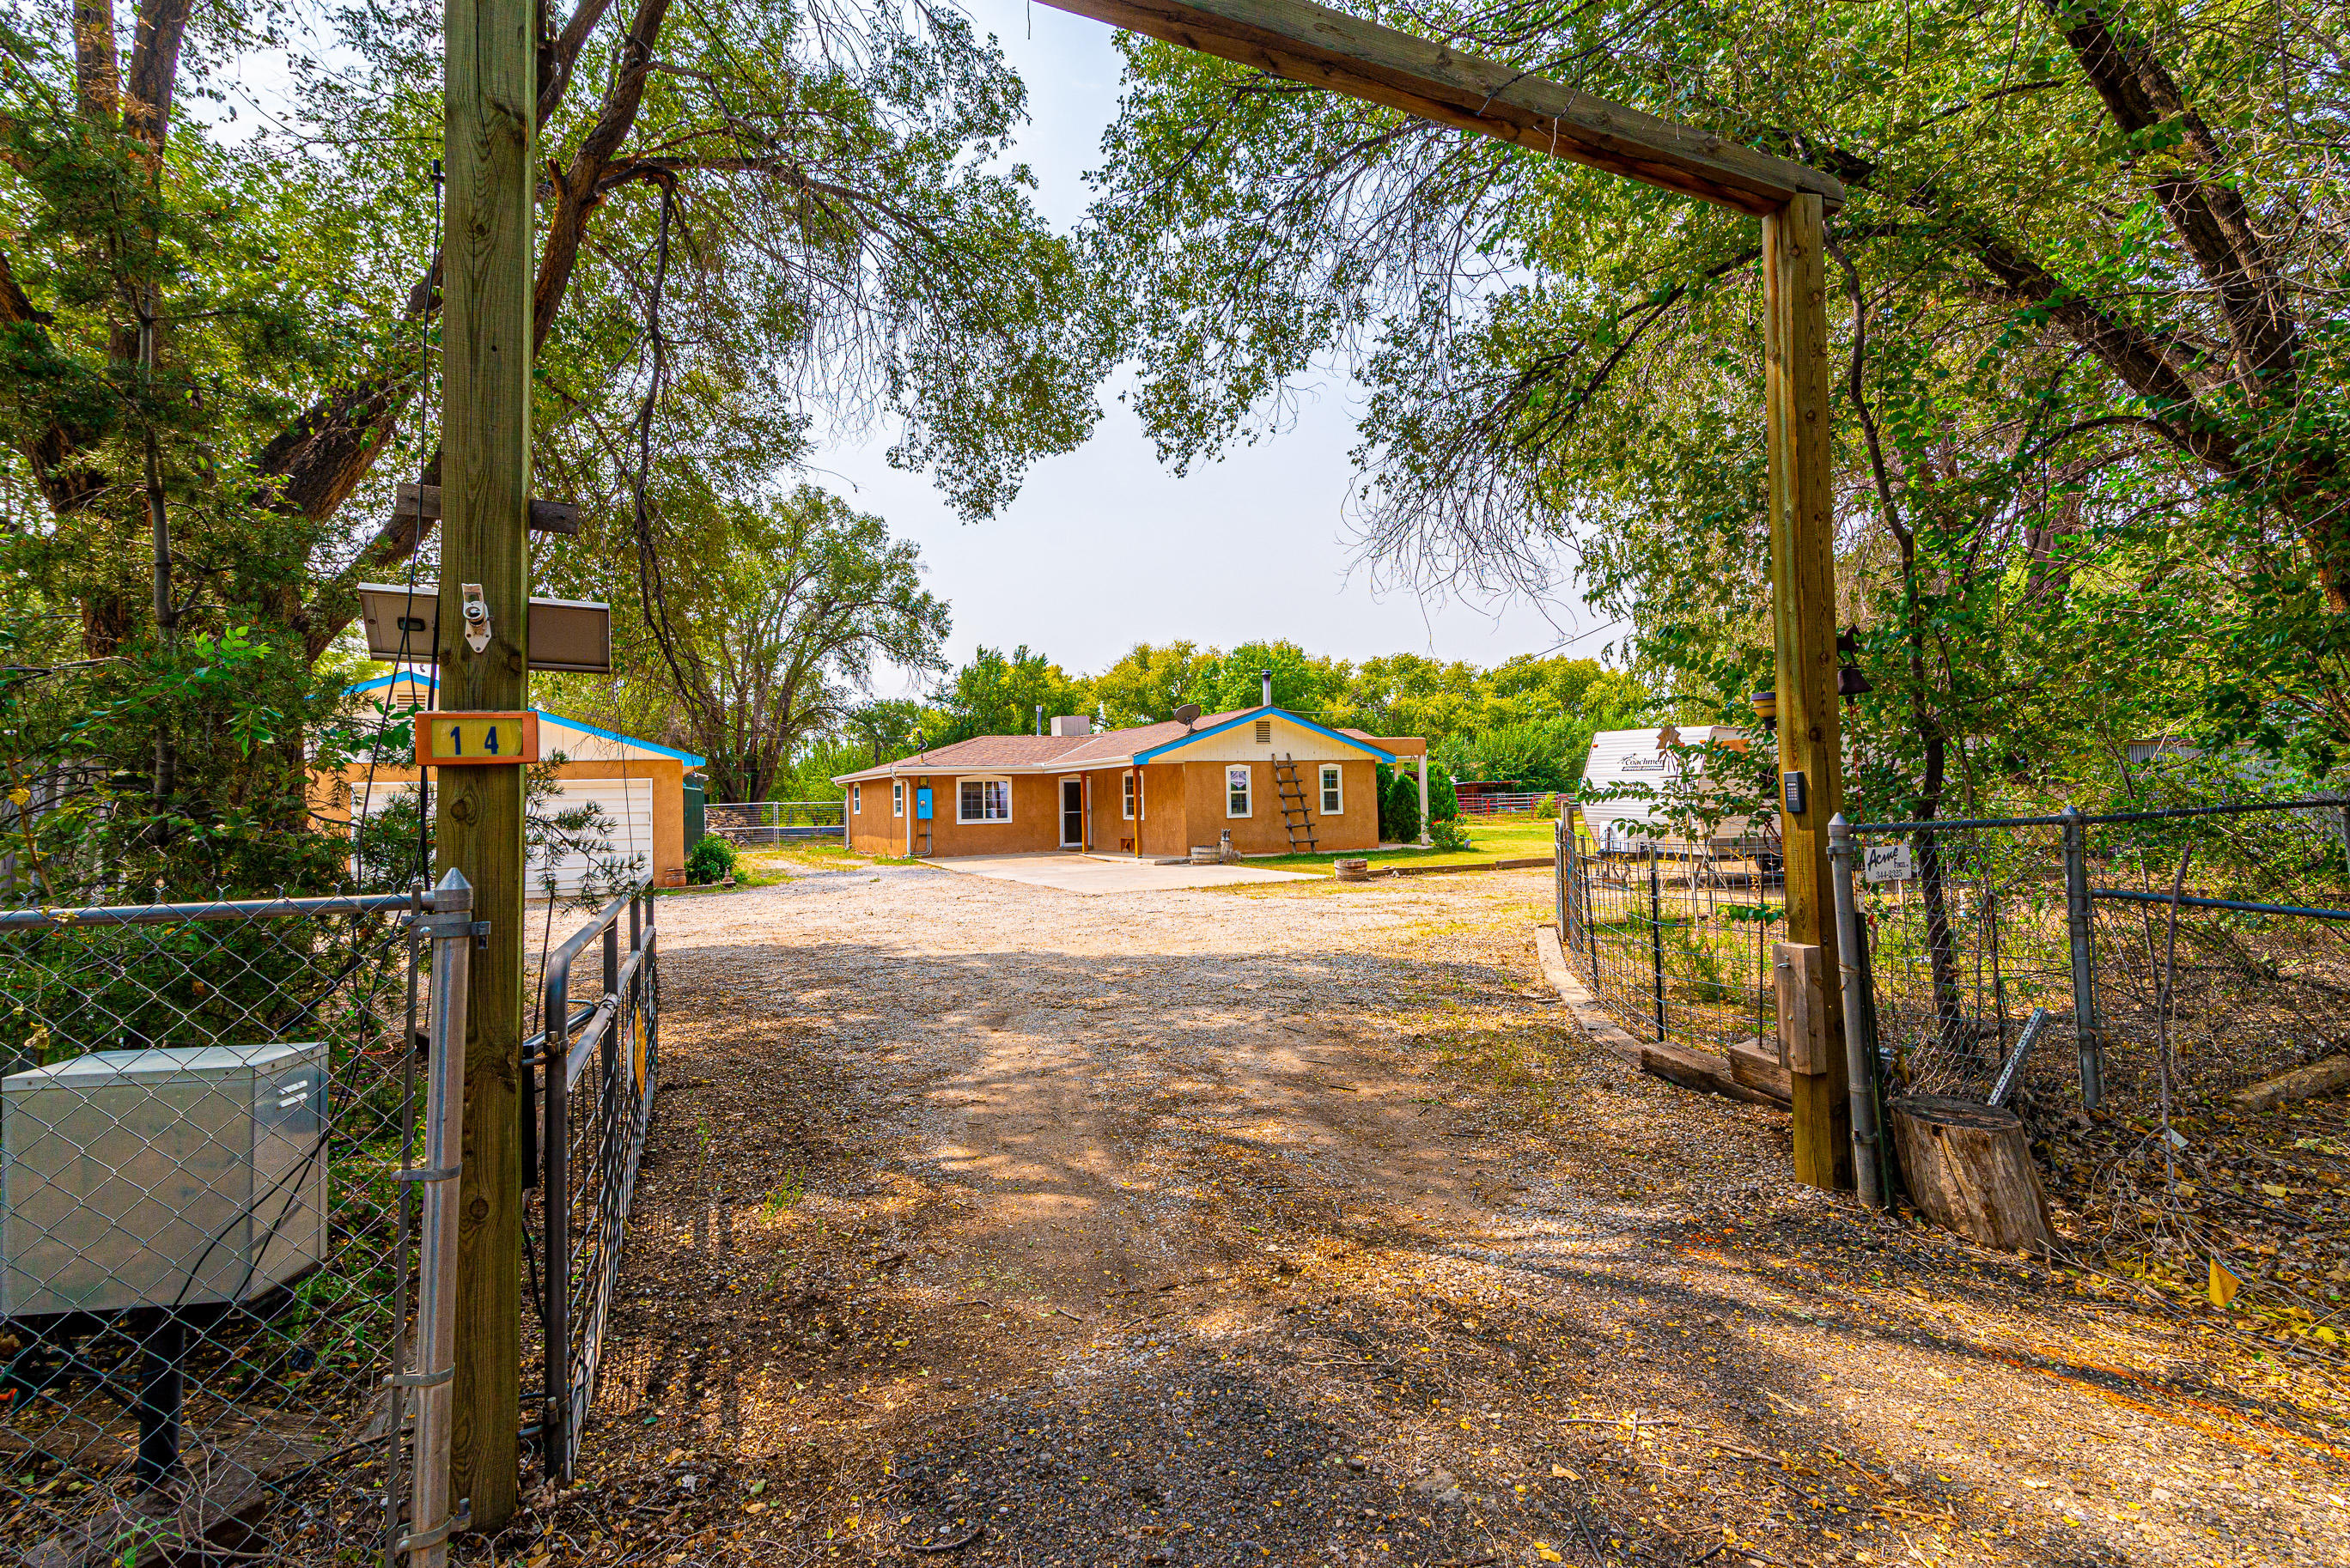 Fantastic single-family ranch home on 1.4 acres at the end of a peaceful culdesac drive--horse lovers/gardeners paradise. Incredible setting! Inside you'll find a large greatroom with saltillo tile flooring, wood stove and lots of light; Kitchen has pretty tile counter/backsplash, gas cook-top and barista/buffet area;  Gorgeous sunroom has valuted ceilings, skylites   overlooks lush grounds. Main BR has pretty vinyl plank flooring, tile throughout home-no carpet, office could be 4th BR. Lrg service room has tons of storage, updated baths. Horse stalls, arena, hay shed--outside storage everywhere. Oversized garage is a woodworkers dream. Shows great!